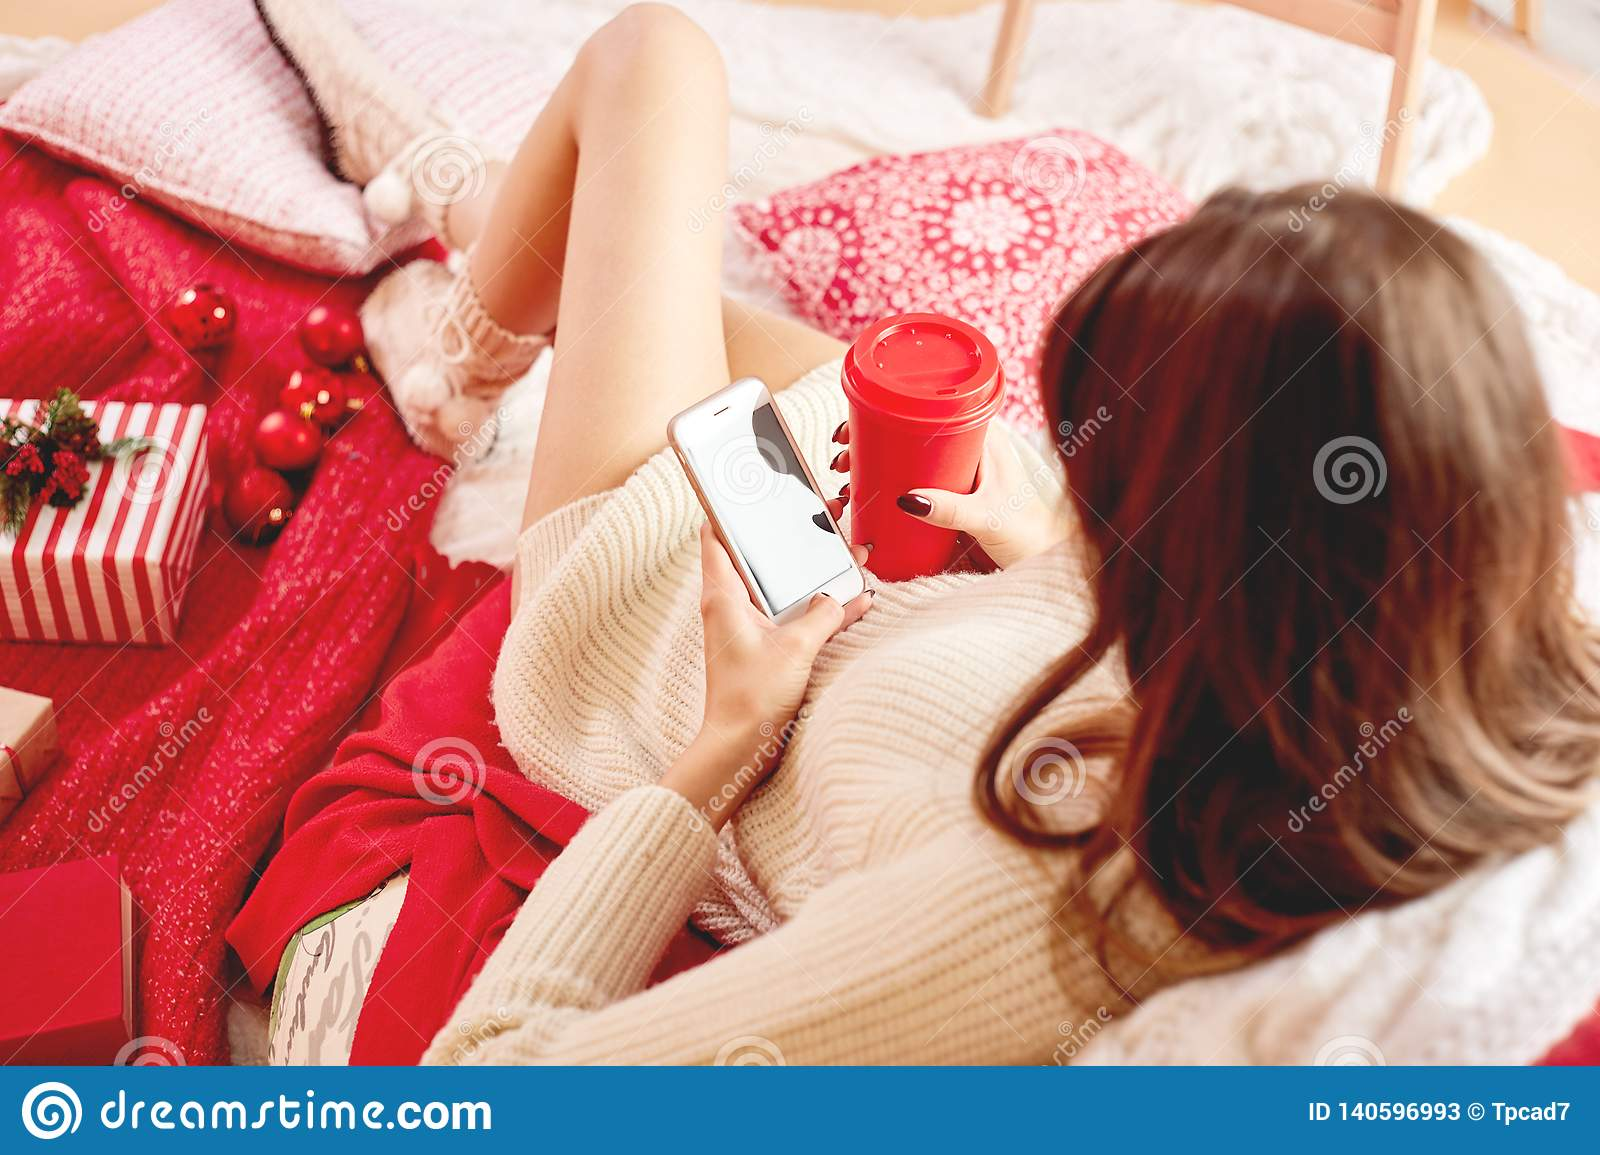 Girl dressed knitted dress and knitted socks lies on red-white blankets and pillows and holds a mobile phone and red cup